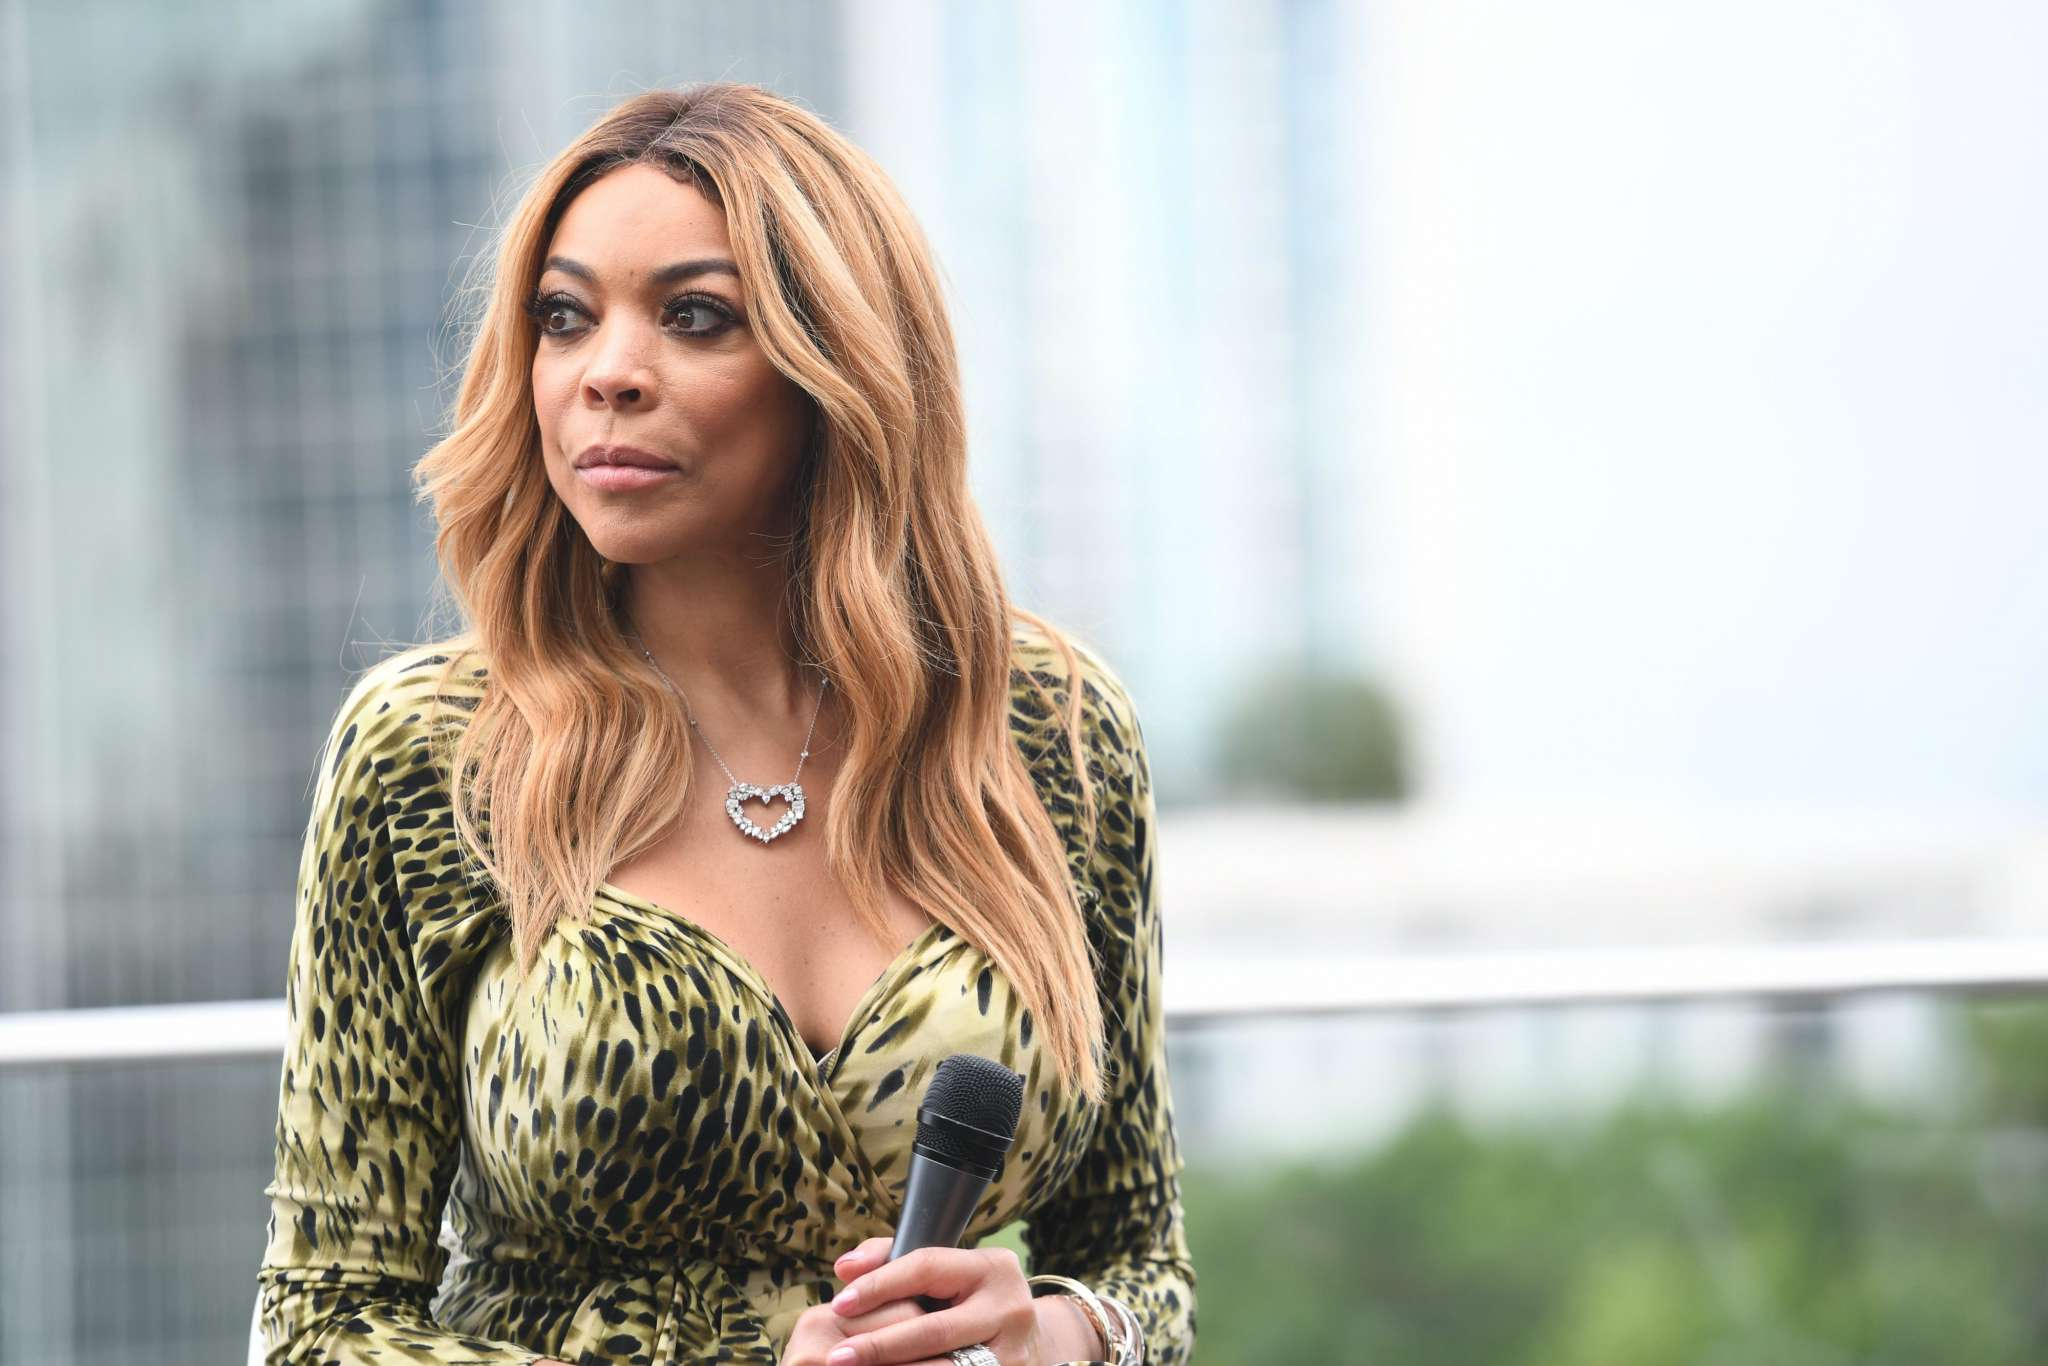 Wendy Williams Releases Drug Addiction PSA: 'There Is Hope'